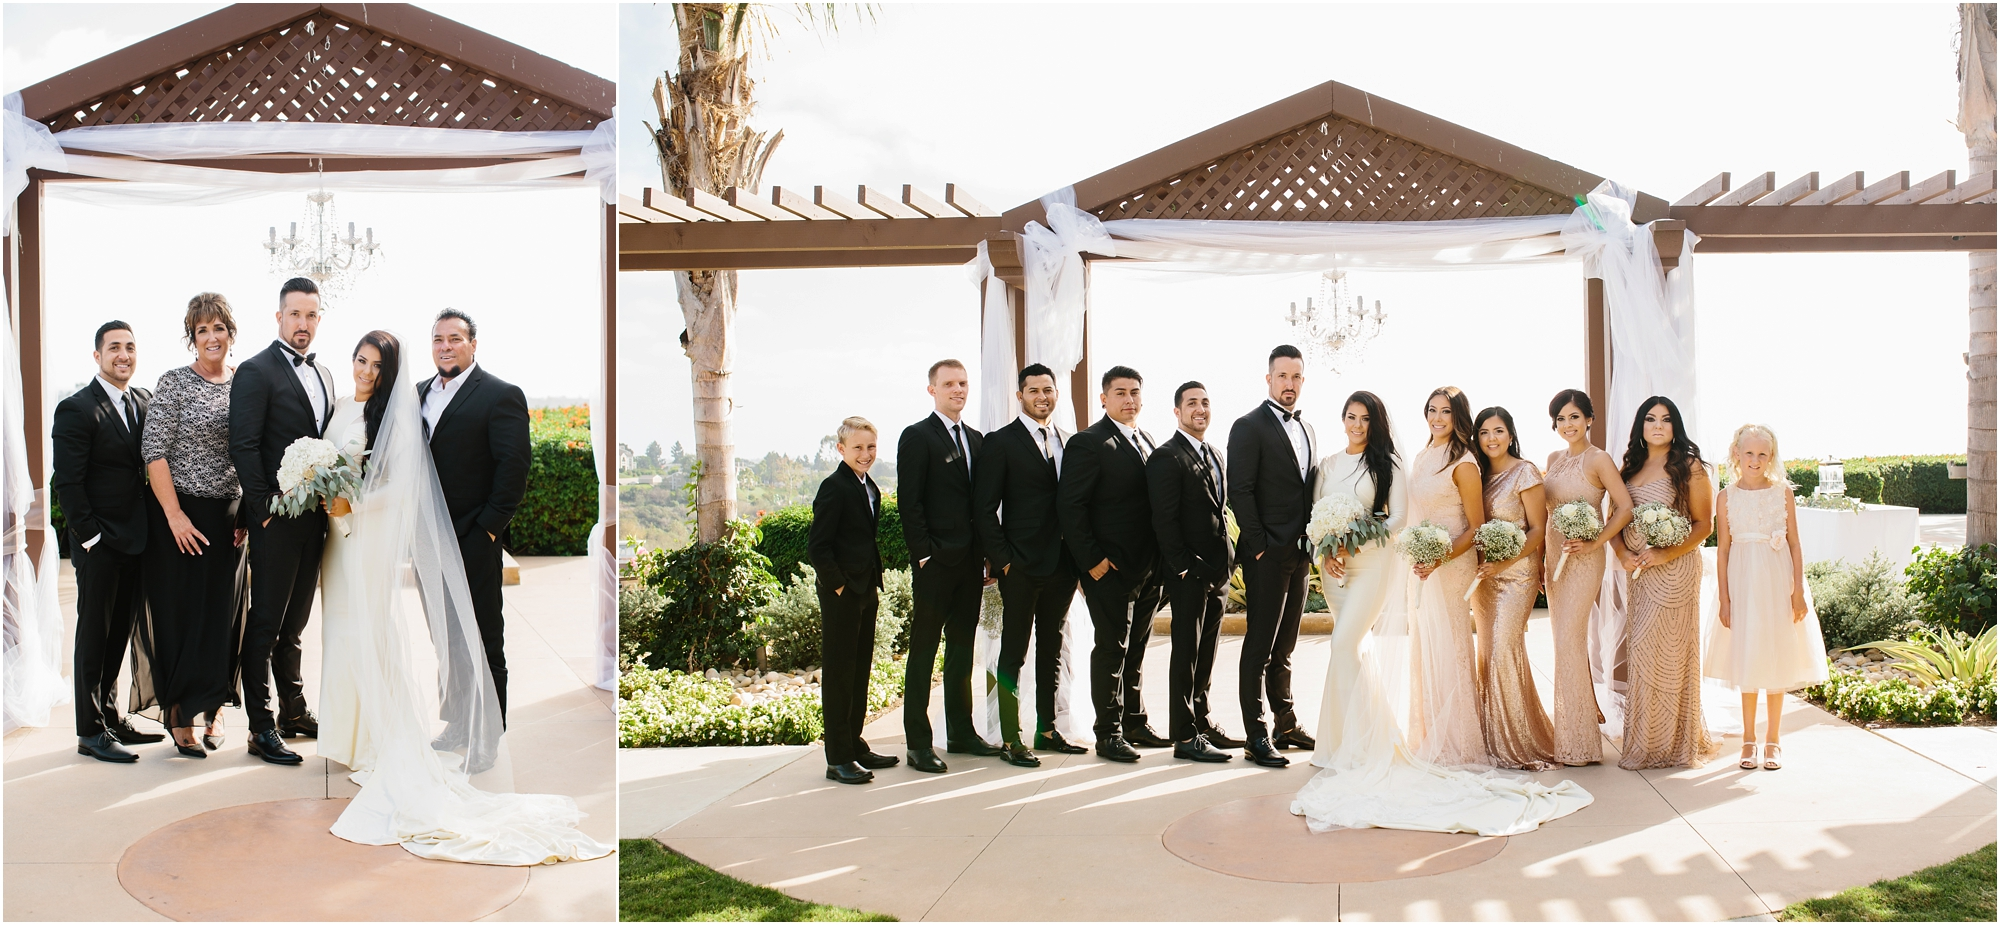 Grand Pacific Palisades Wedding - https://brittneyhannonphotography.com